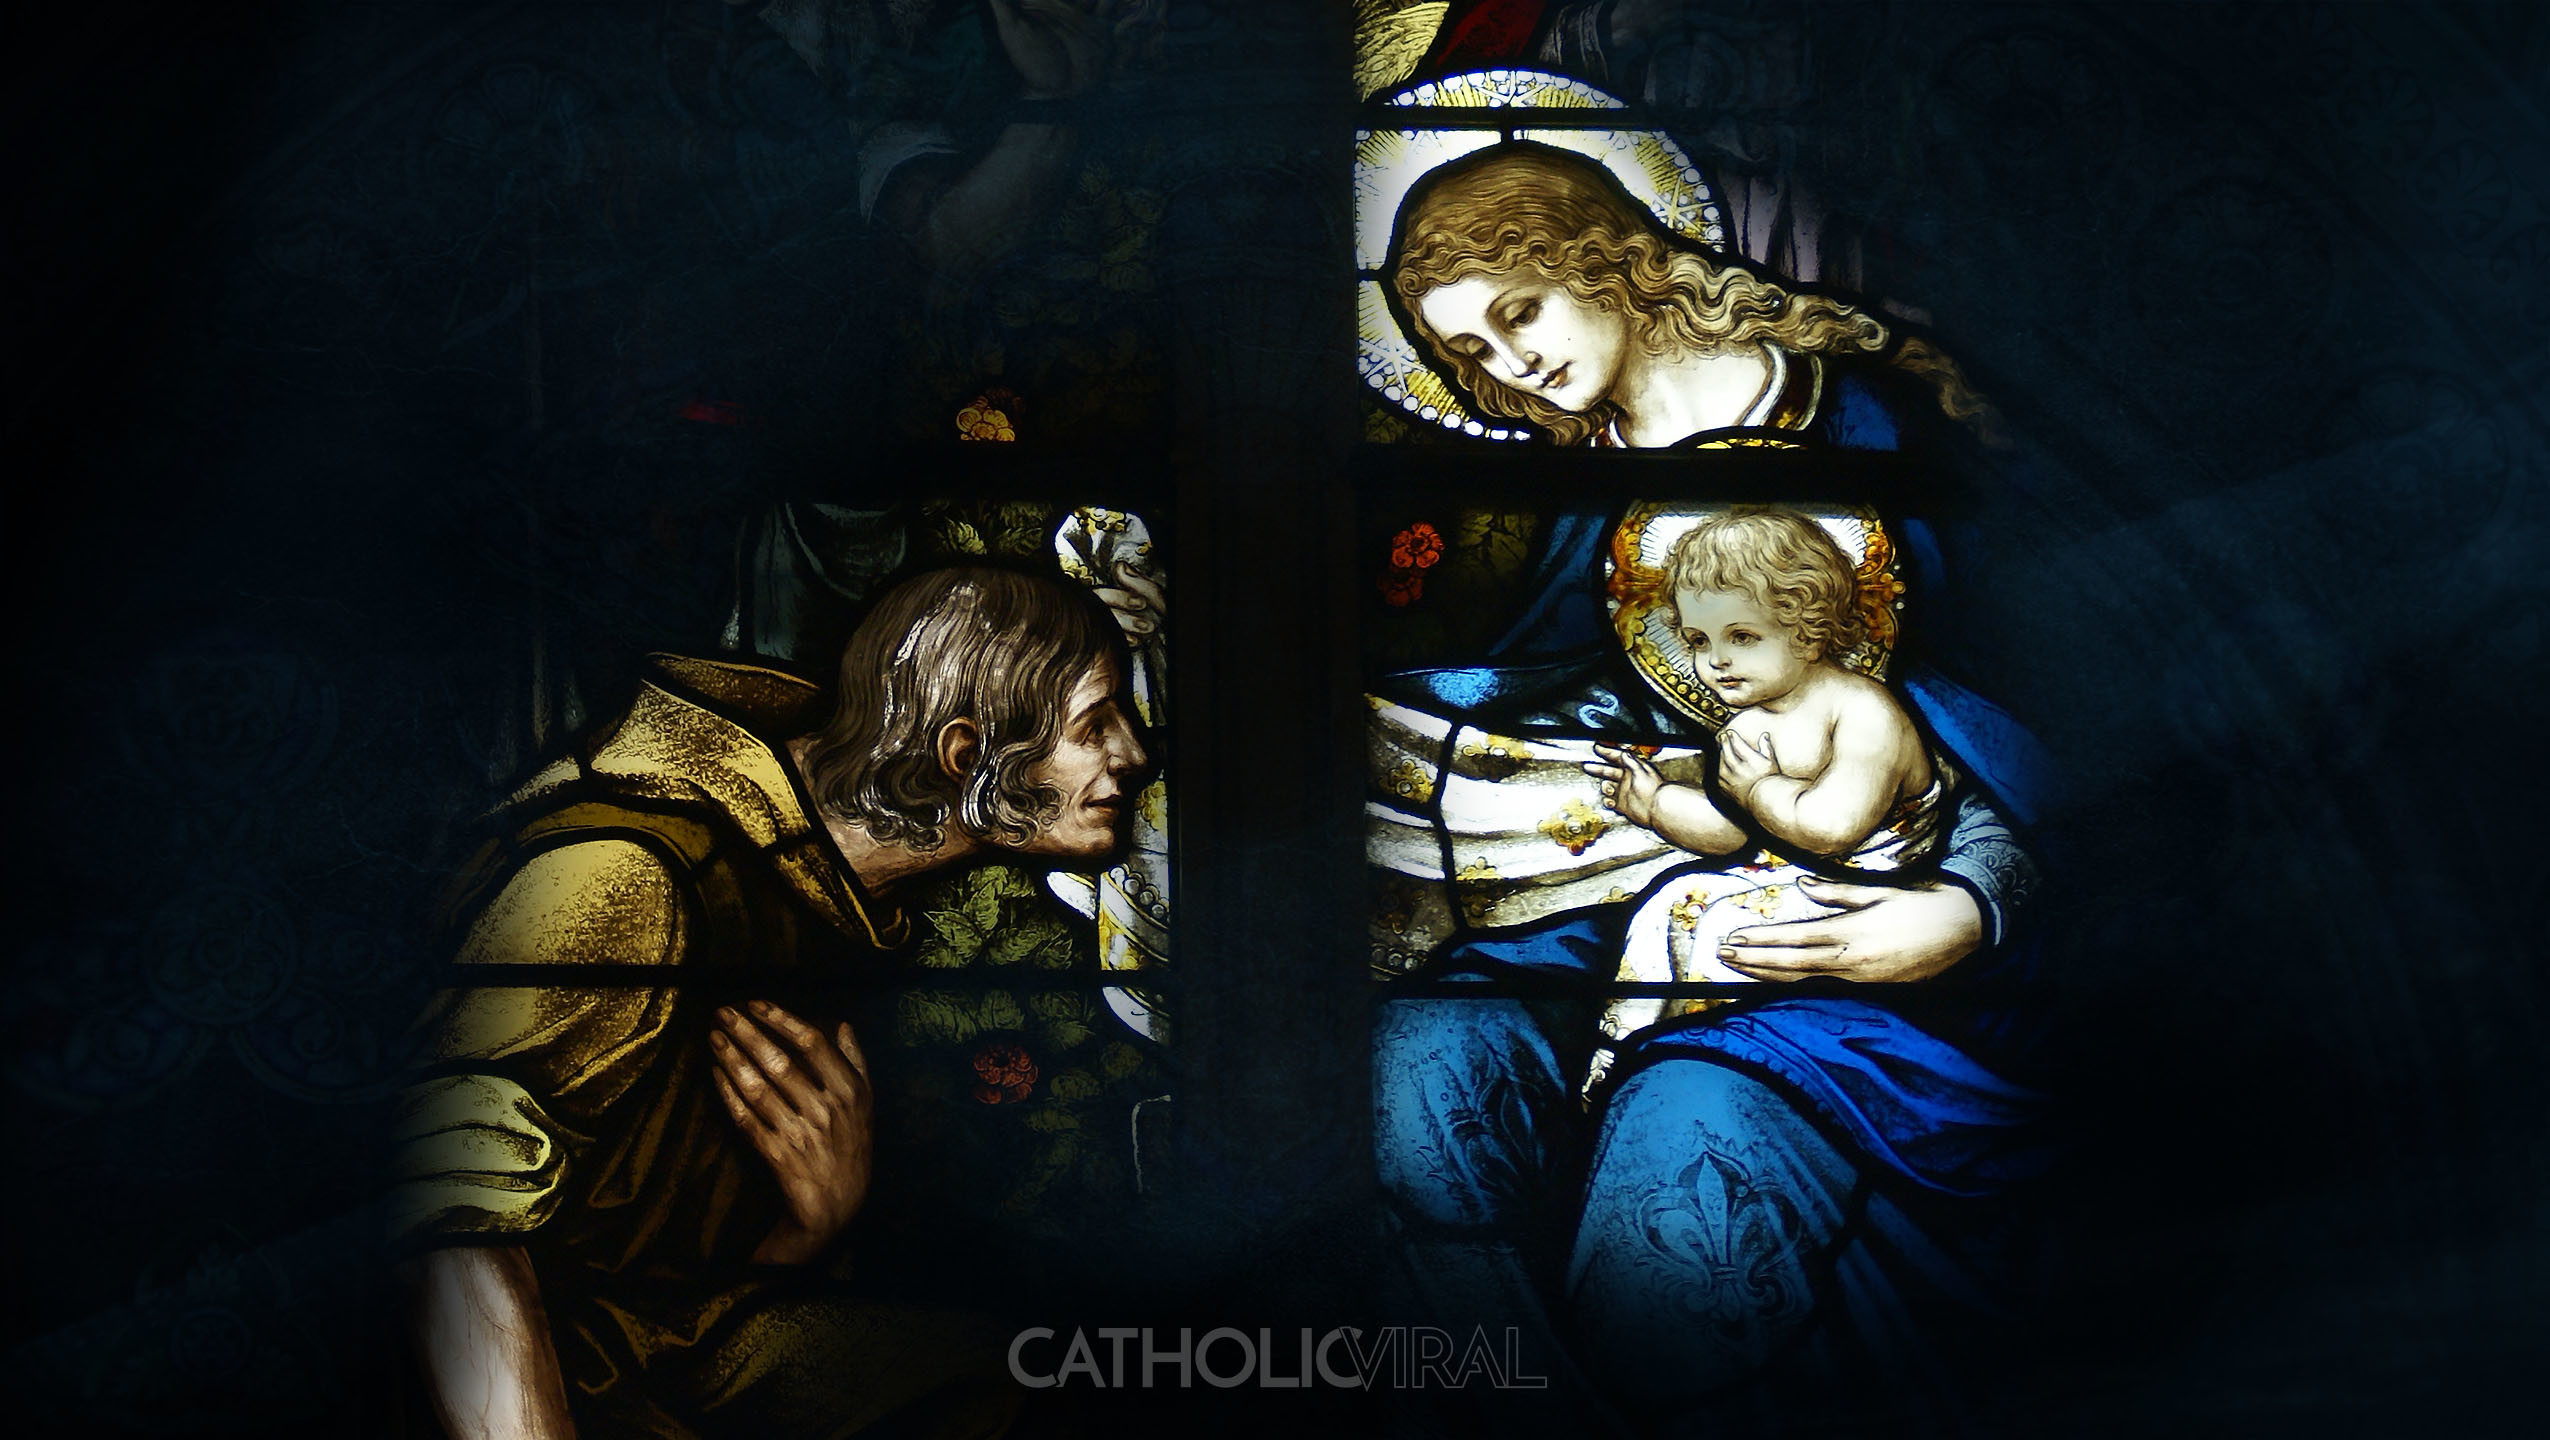 Res: 2550x1440, 17 Stunning Stained-Glass Windows of the Nativity - HD Christmas Wallpapers  - The Birth